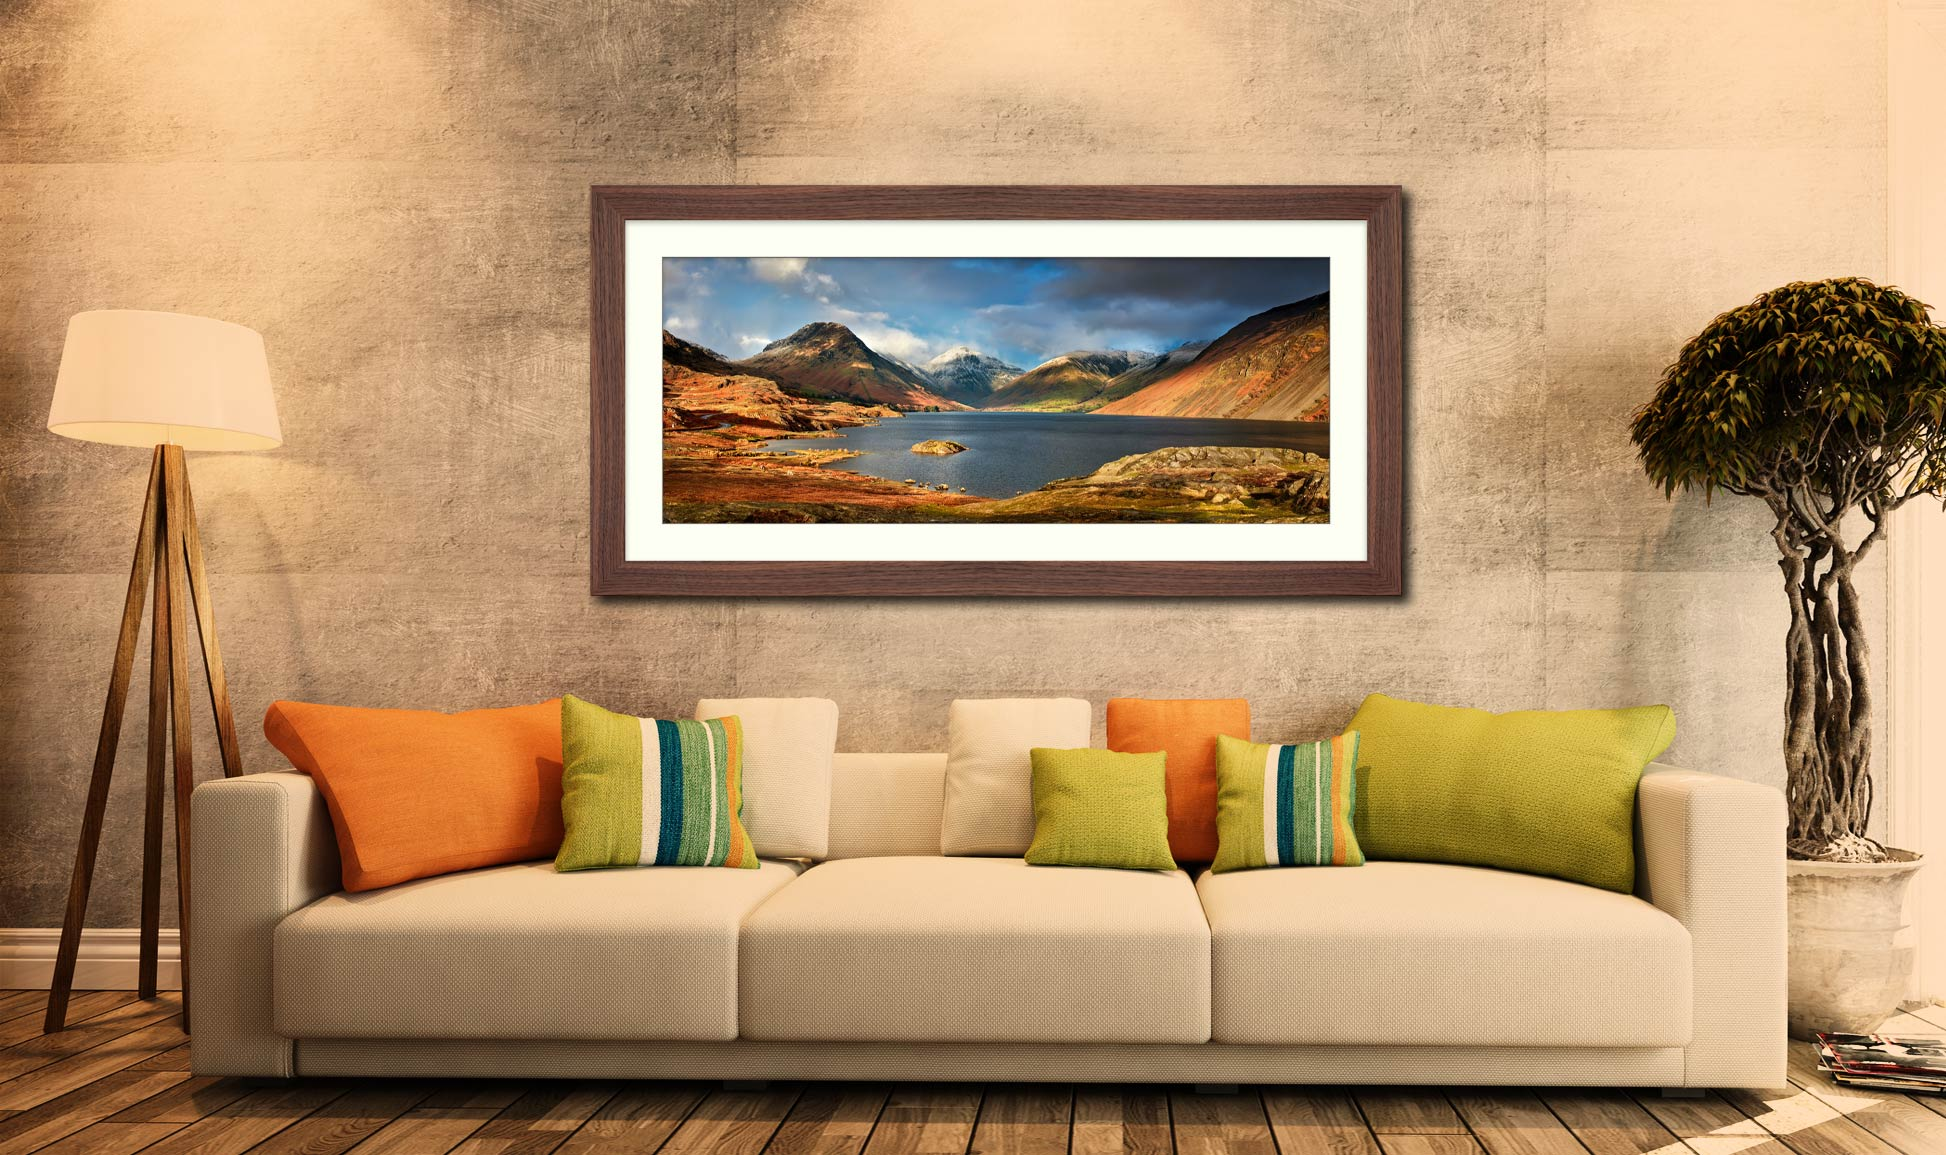 Wast Water Sunlight - Framed Print with Mount on Wall